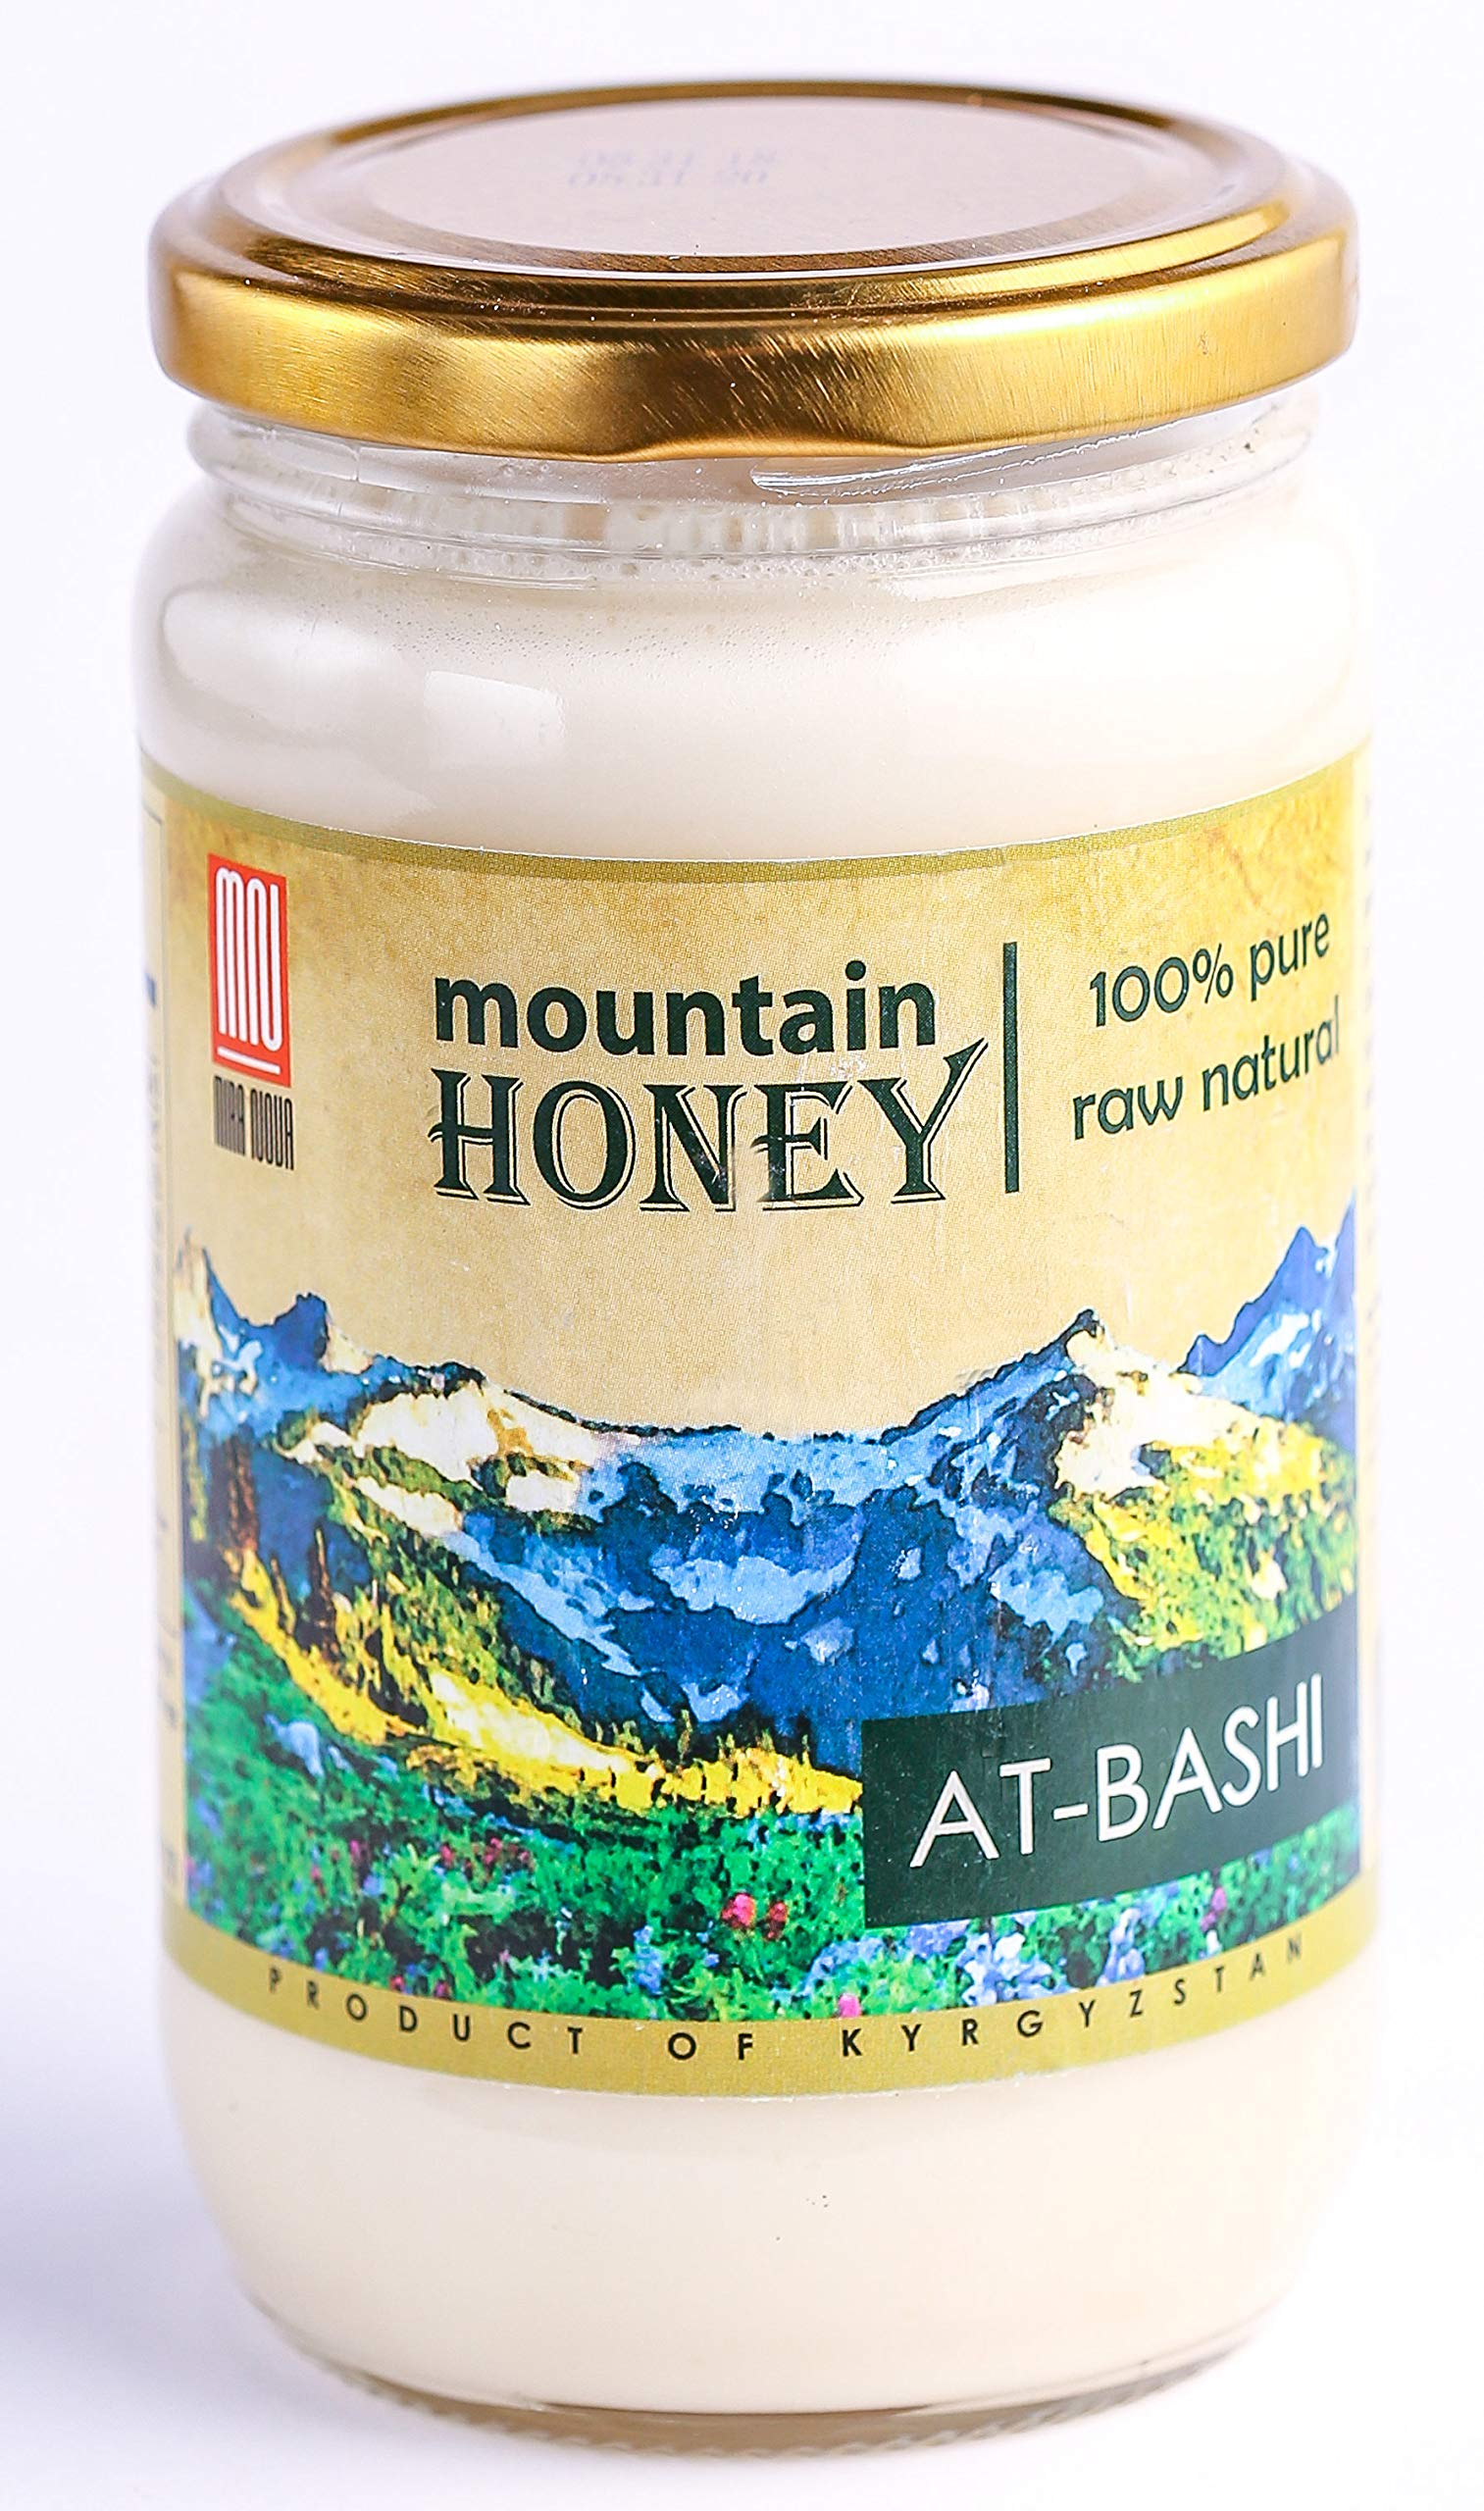 Kyrgyz White Honey; At-Bashi Raw Natural Wildflower Mountain Honey; 15.87 Ounce Glass Jar